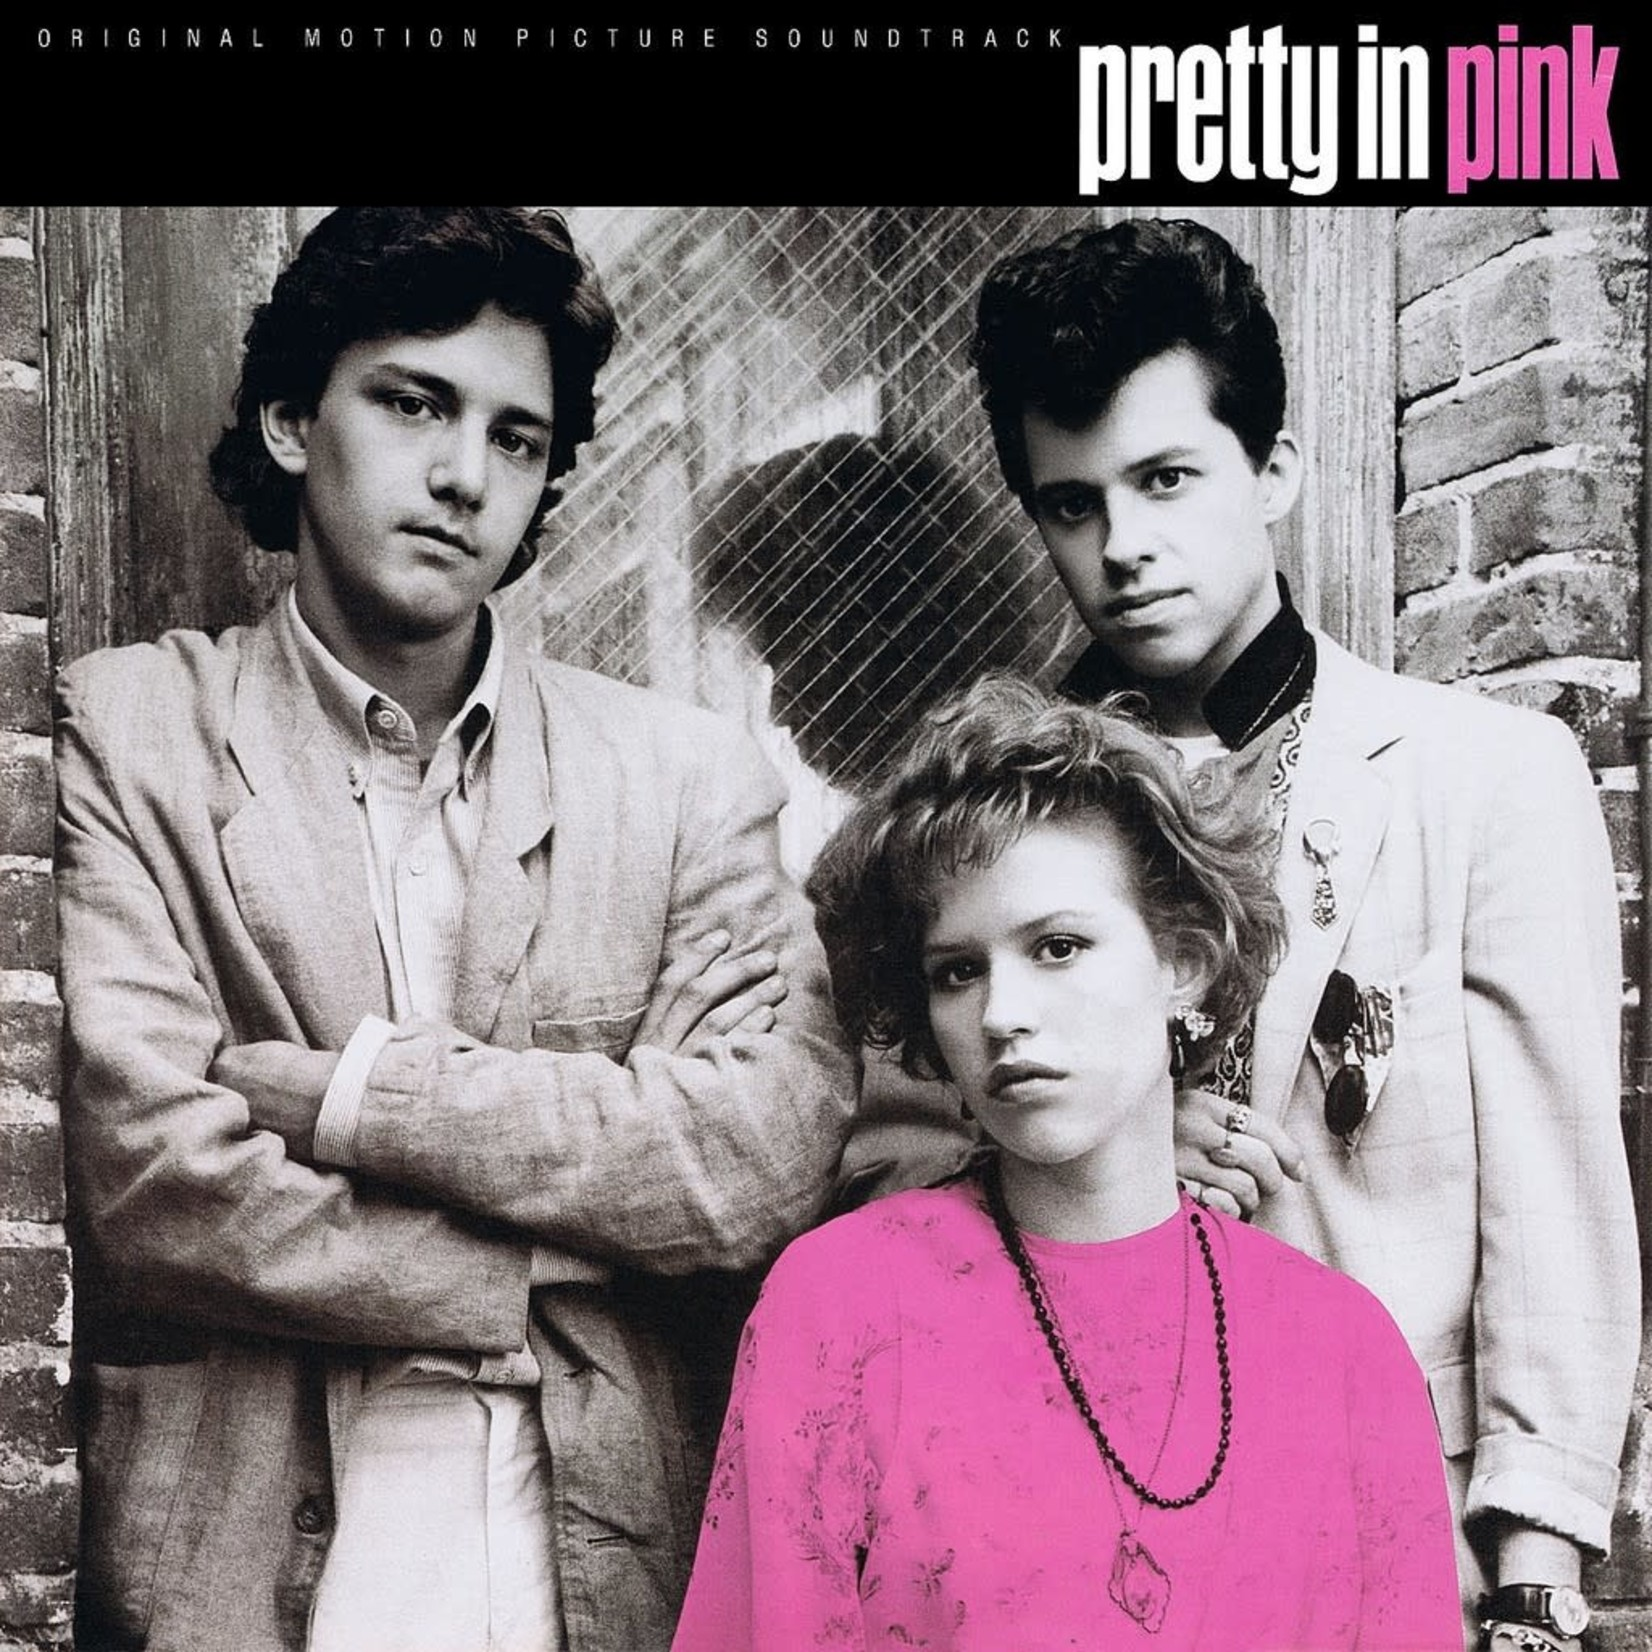 [Vintage] Various: Pretty in Pink (Soundtrack)